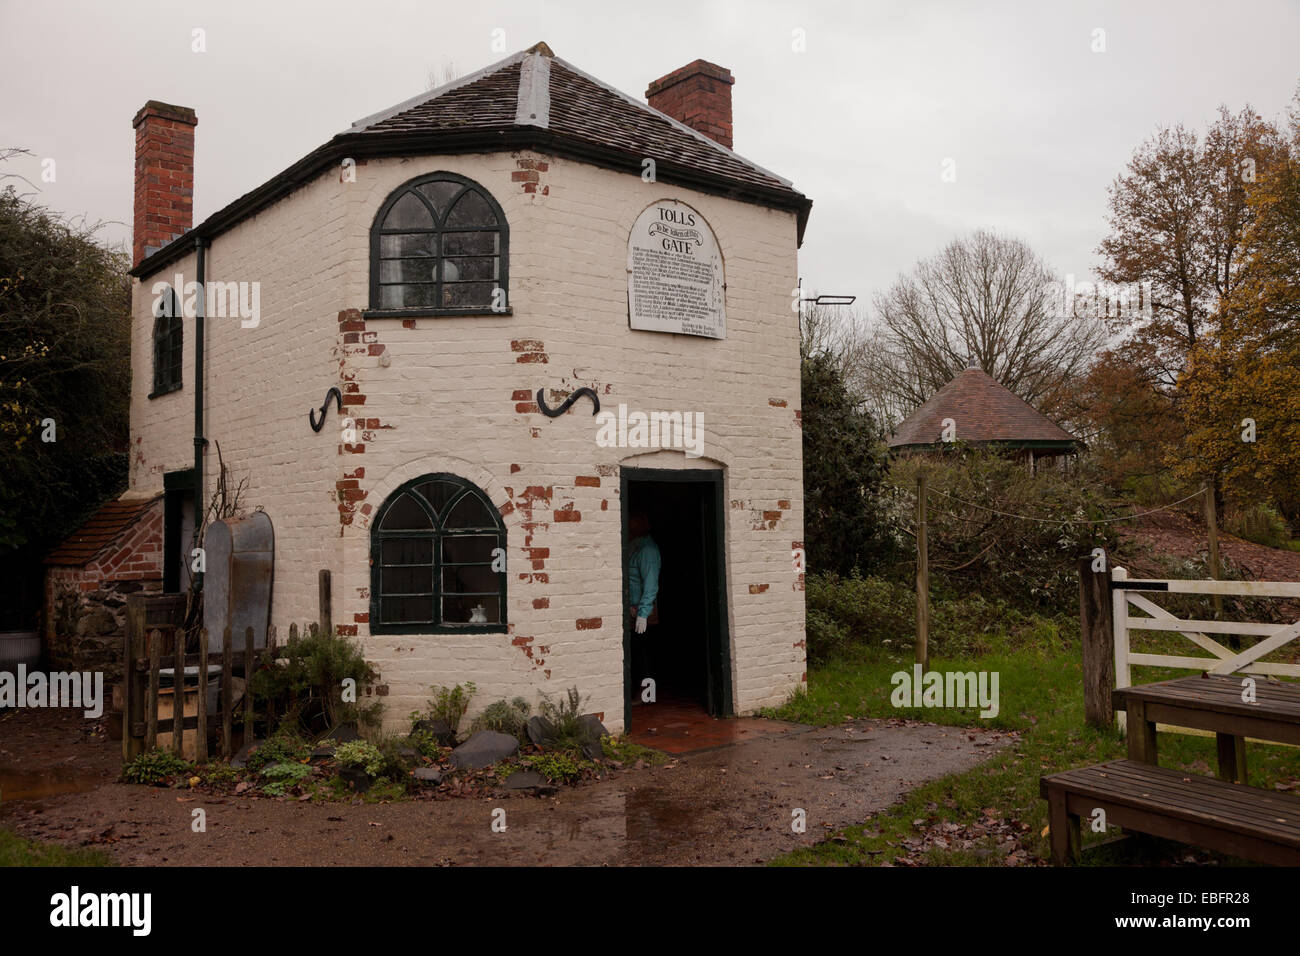 Eighteenth century toll house in a museum setting. Avoncroft Museum of Buildings, Worcs UK - Stock Image